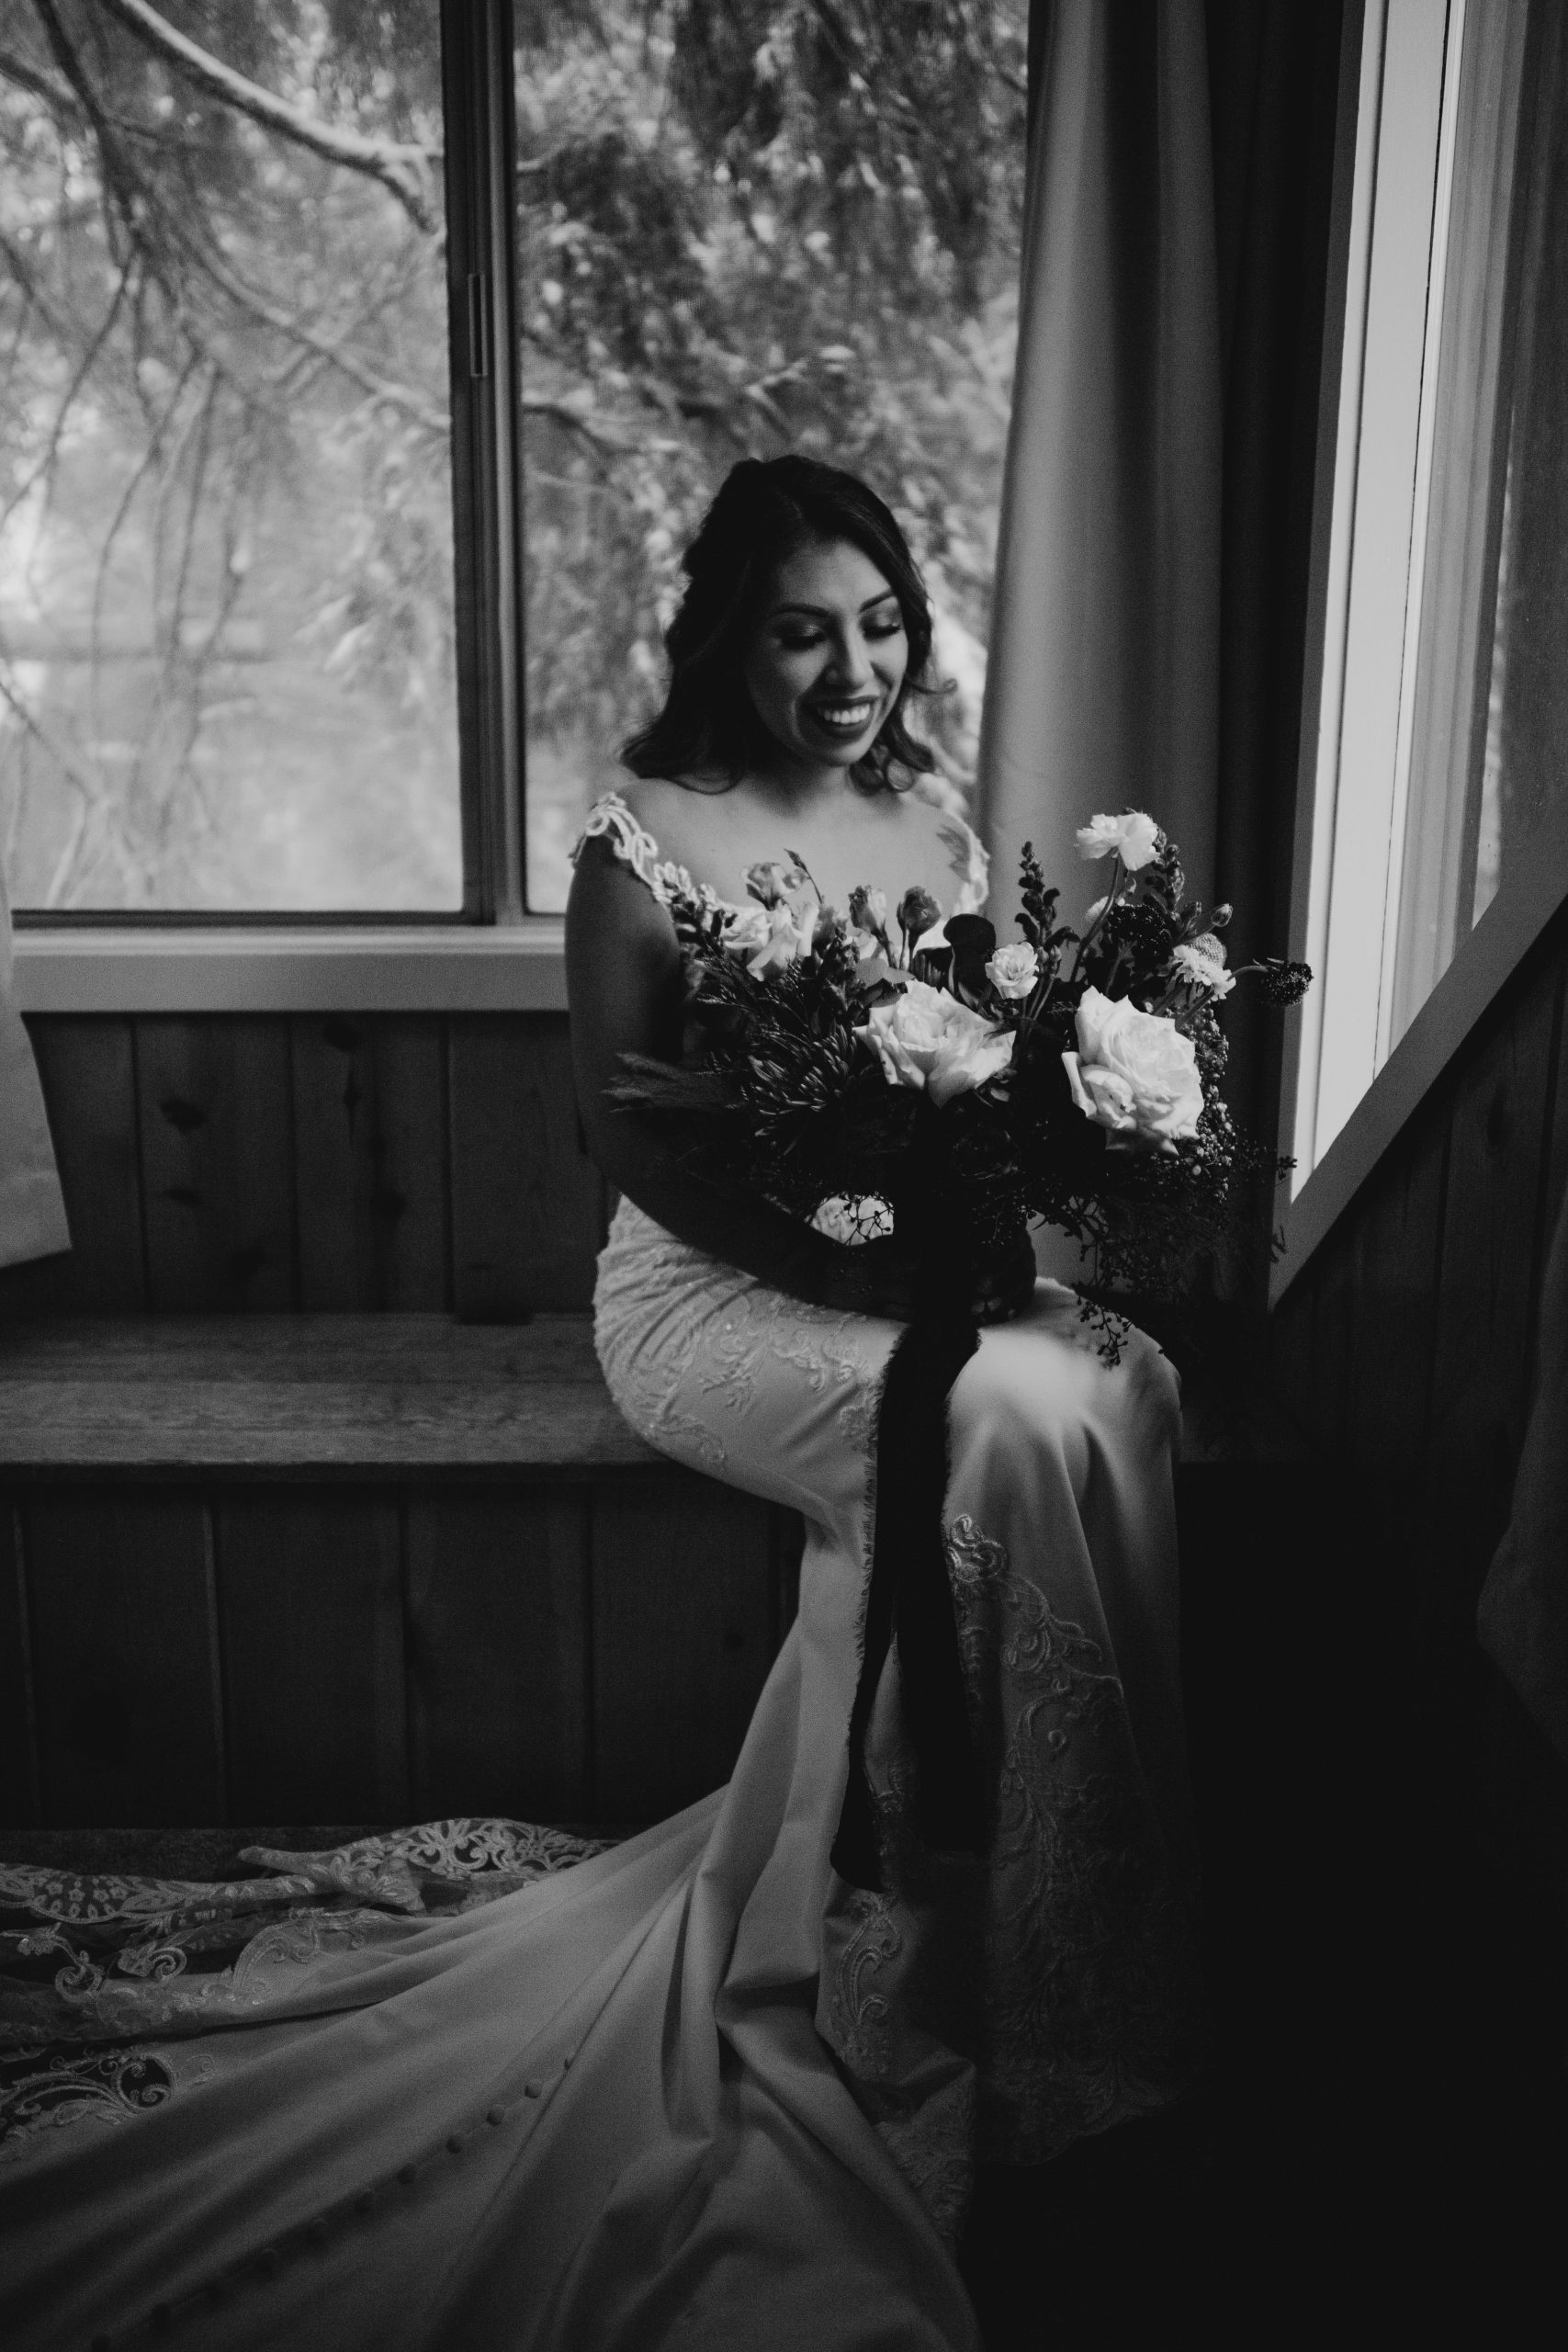 Bride with her bridal bouquet, image by Fatima Elreda Photo